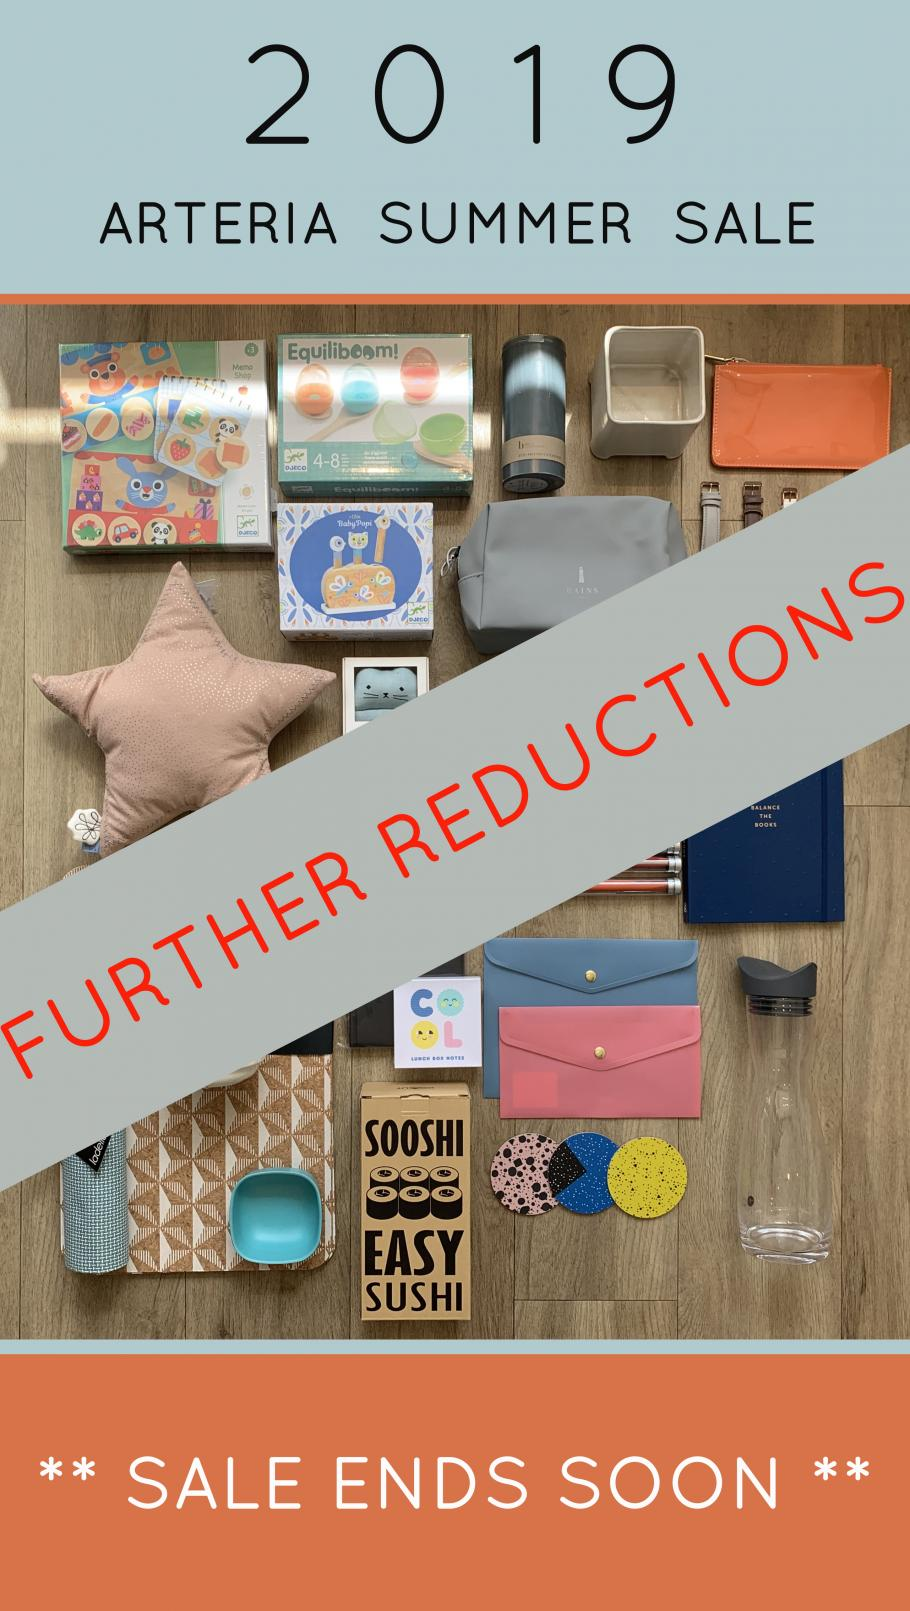 THE ARTERIA SUMMER SALE FINISHES 21ST AUGUST